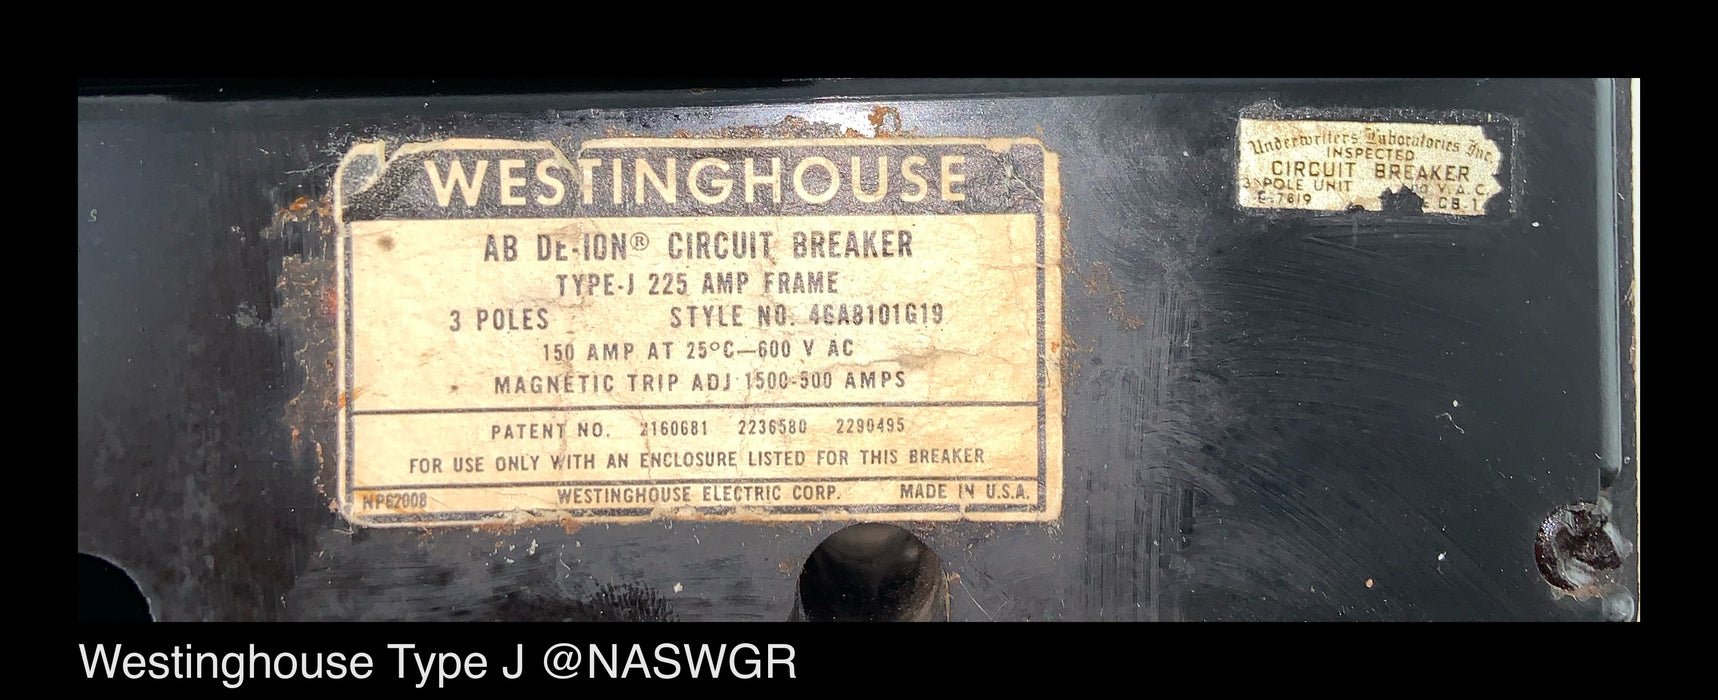 Westinghouse Type J Circuit Breaker